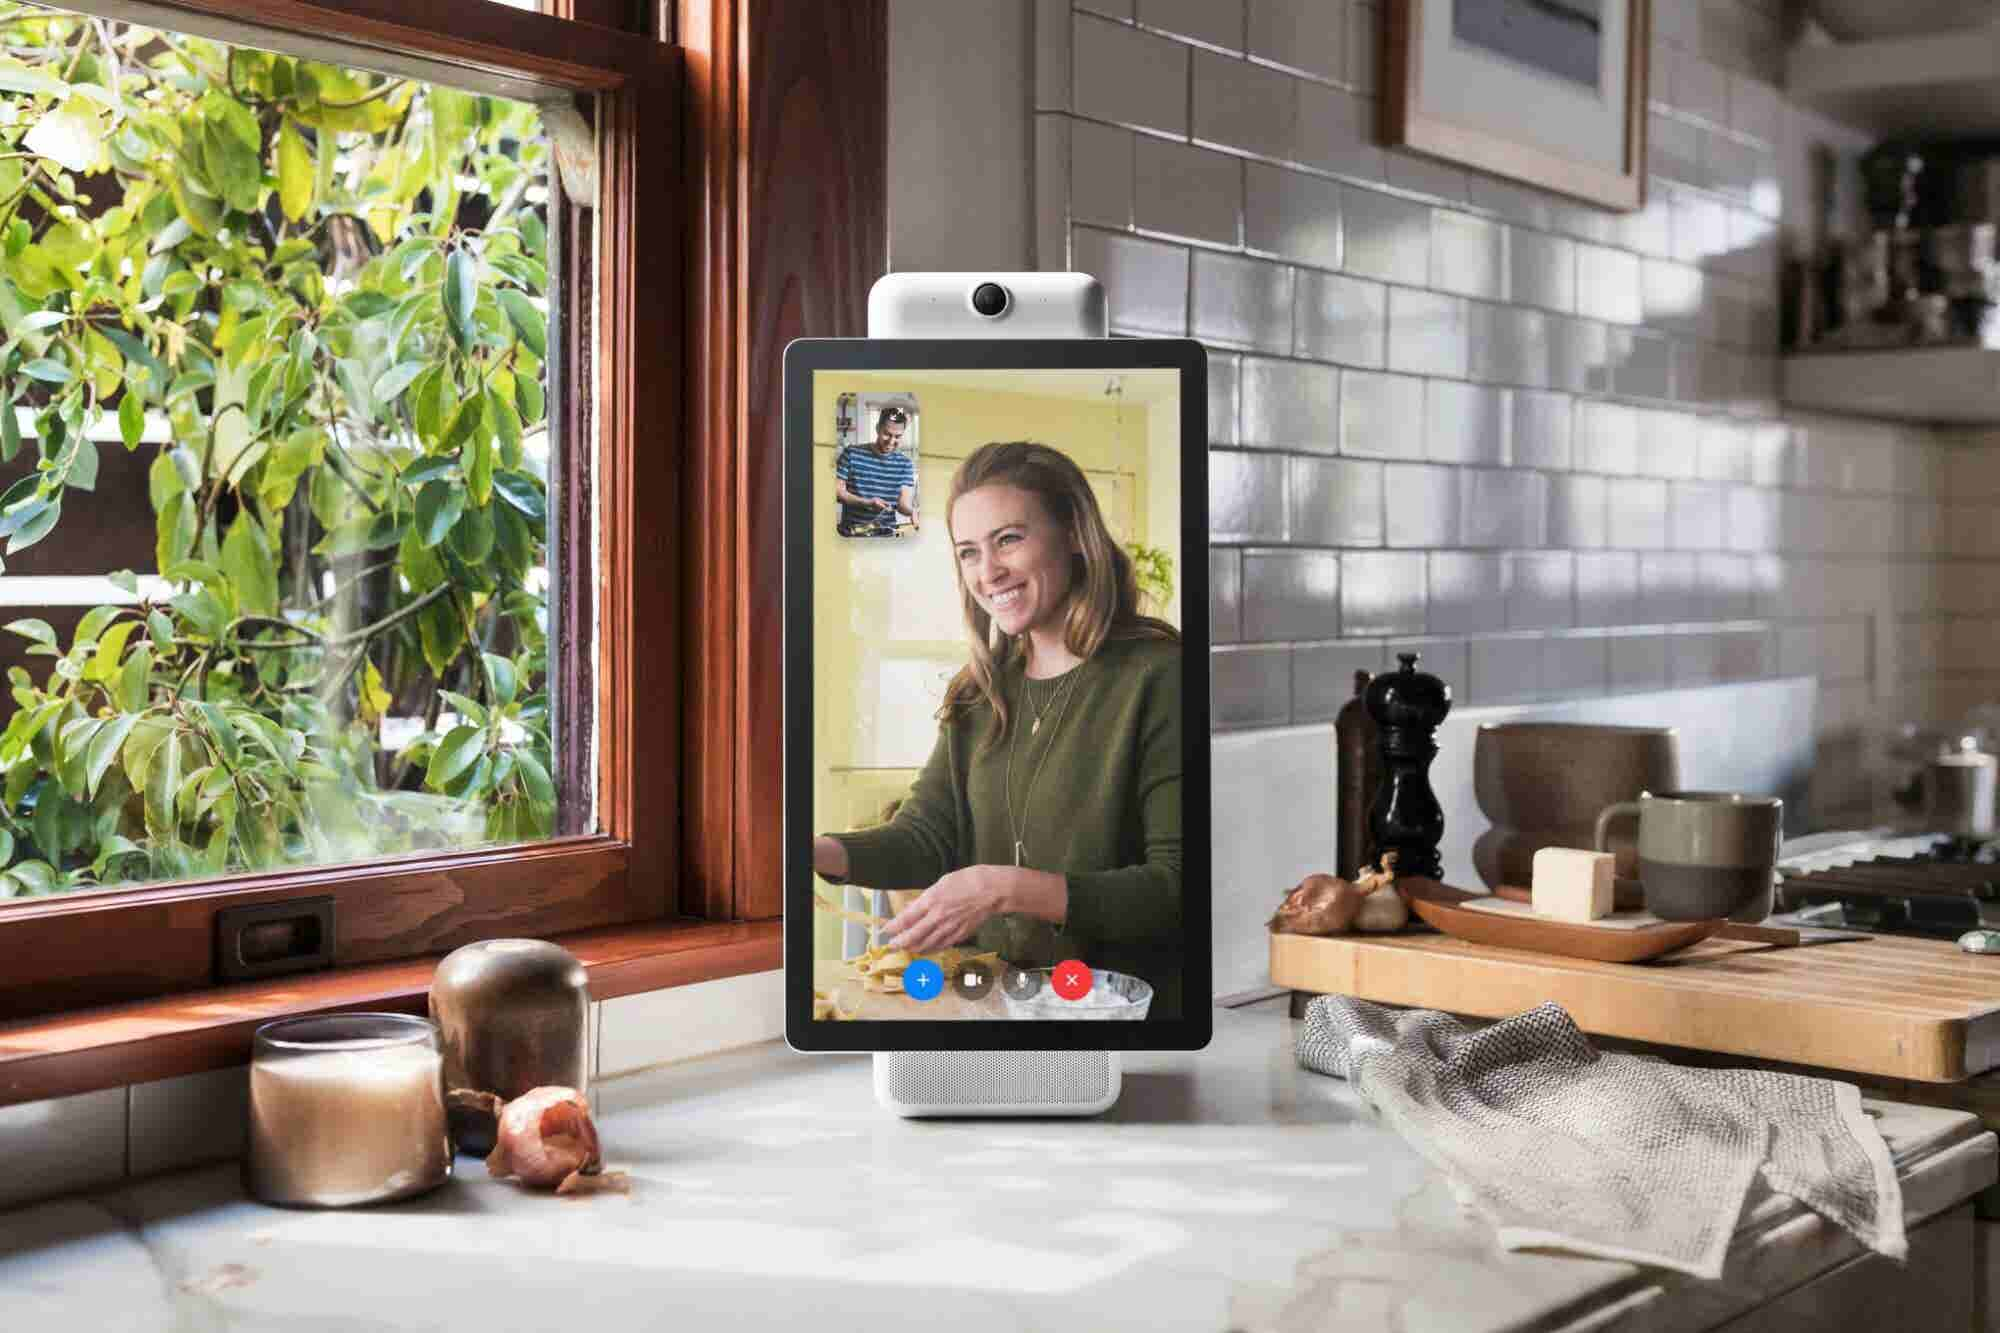 Facebook Launches a Video Chat Device